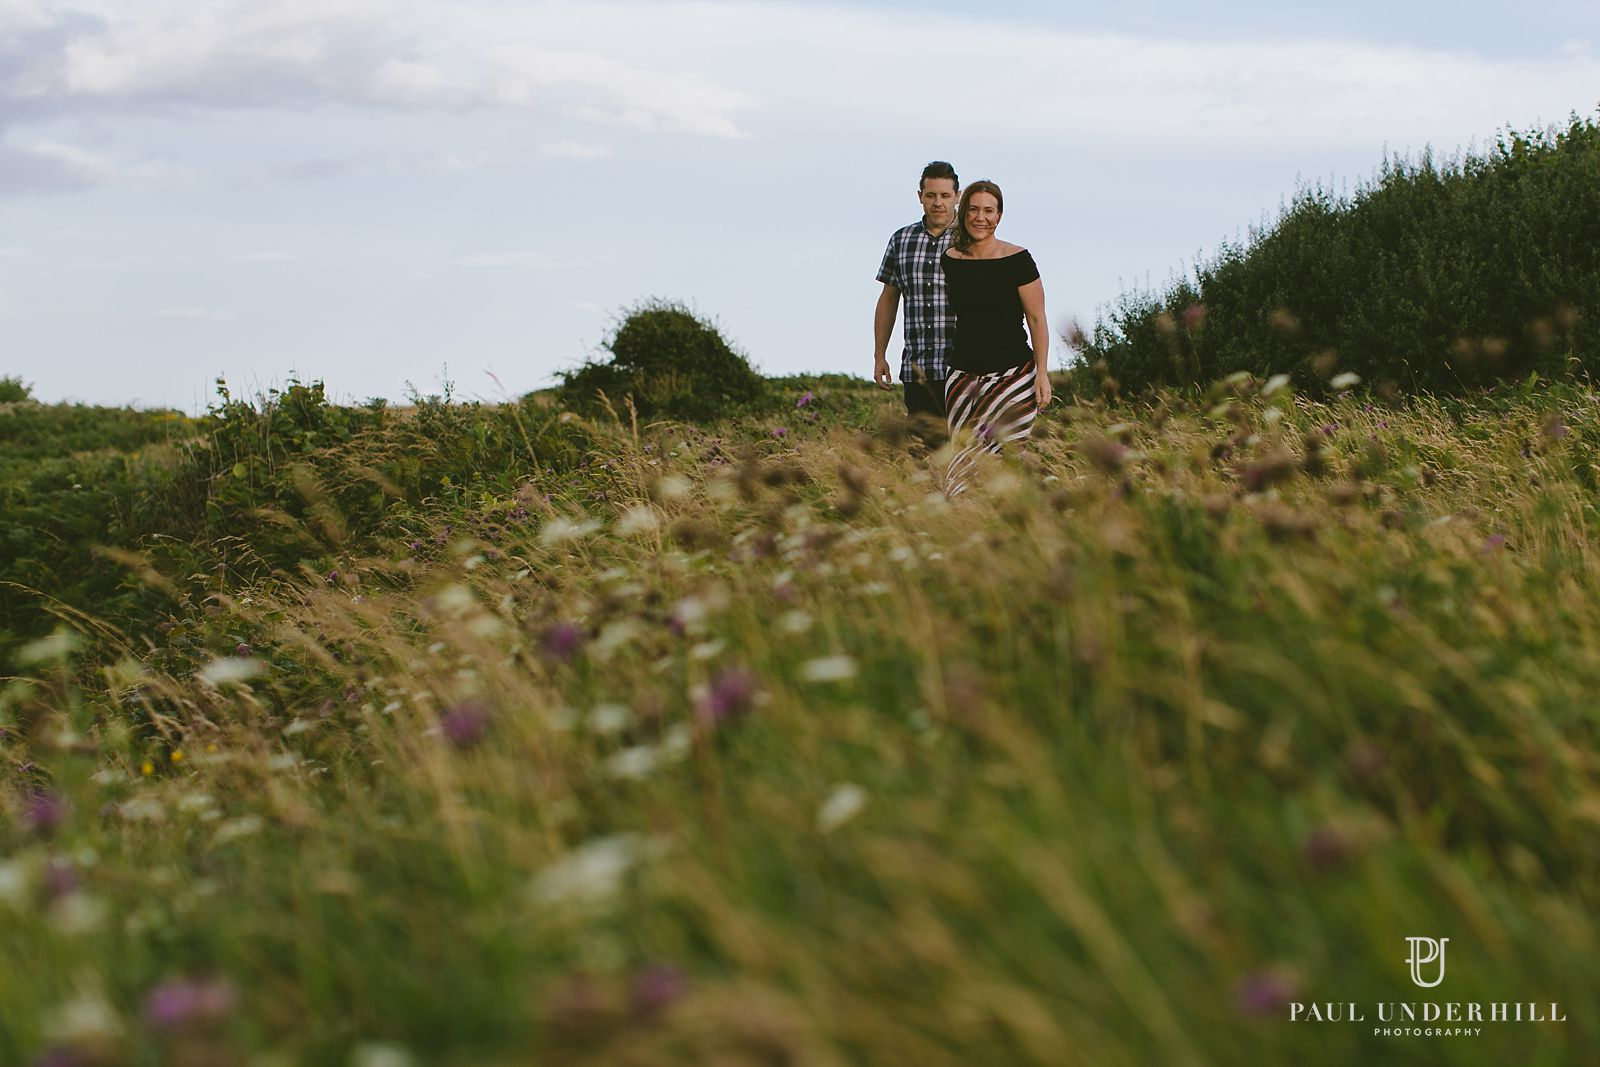 Creative photographers in Dorset